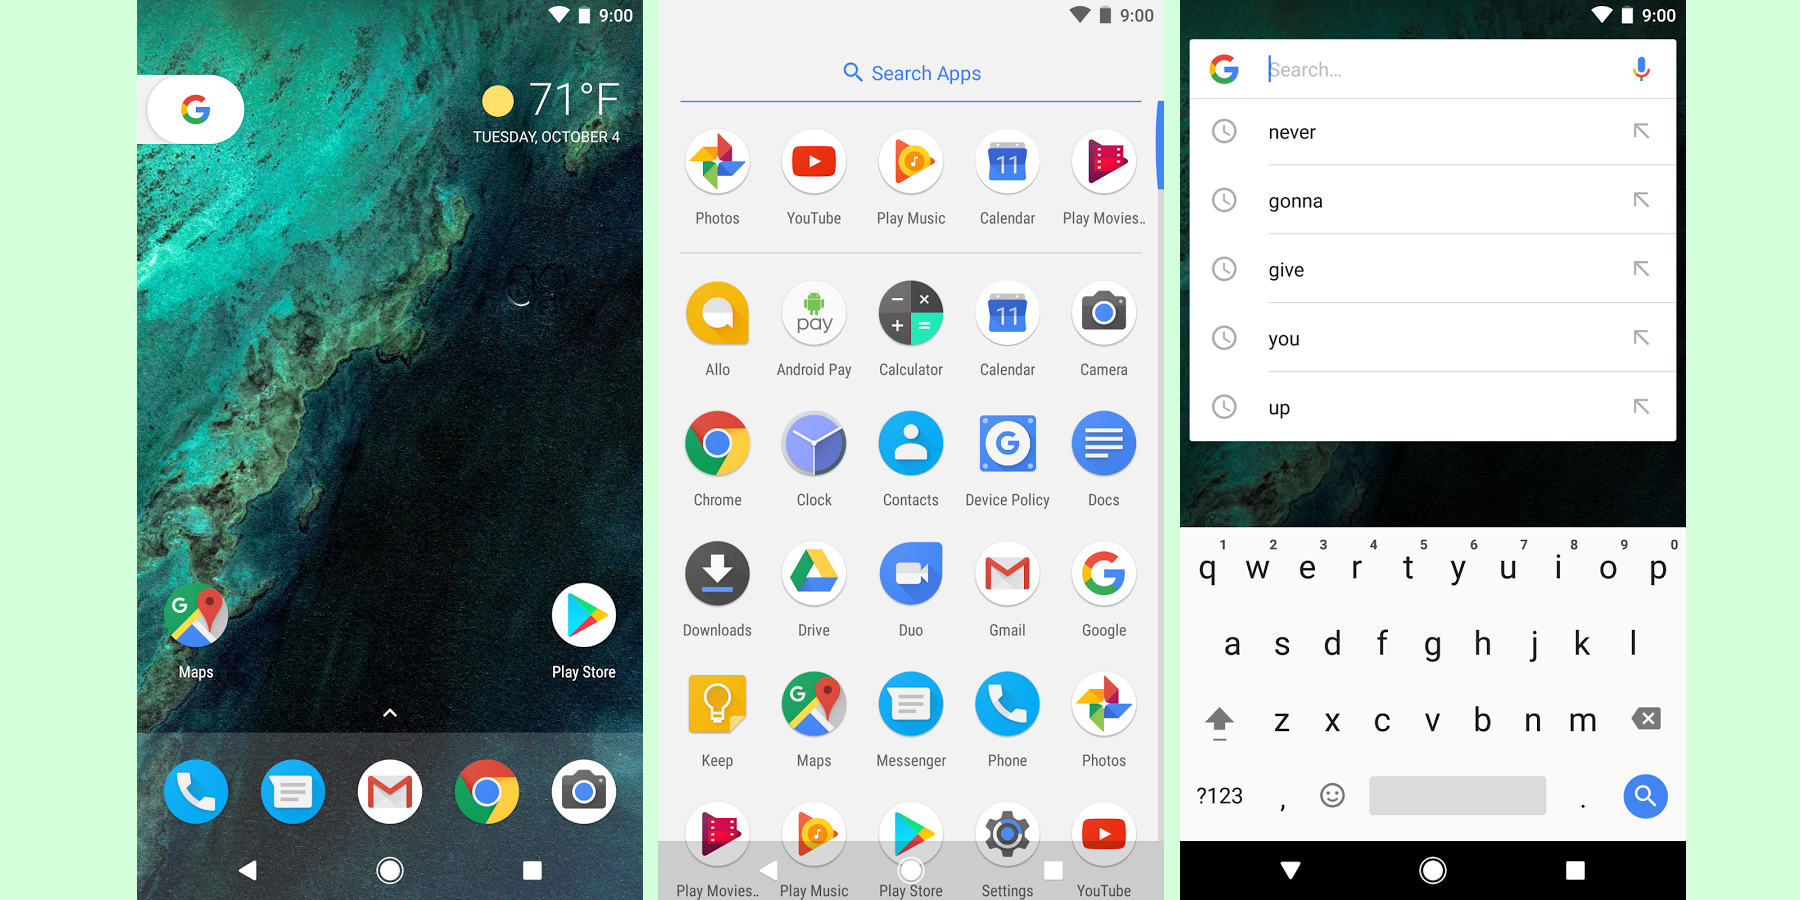 Google Wallpapers Pixel Launcher Hit The Play Store But The Latter Only Works W Pixel 9to5google